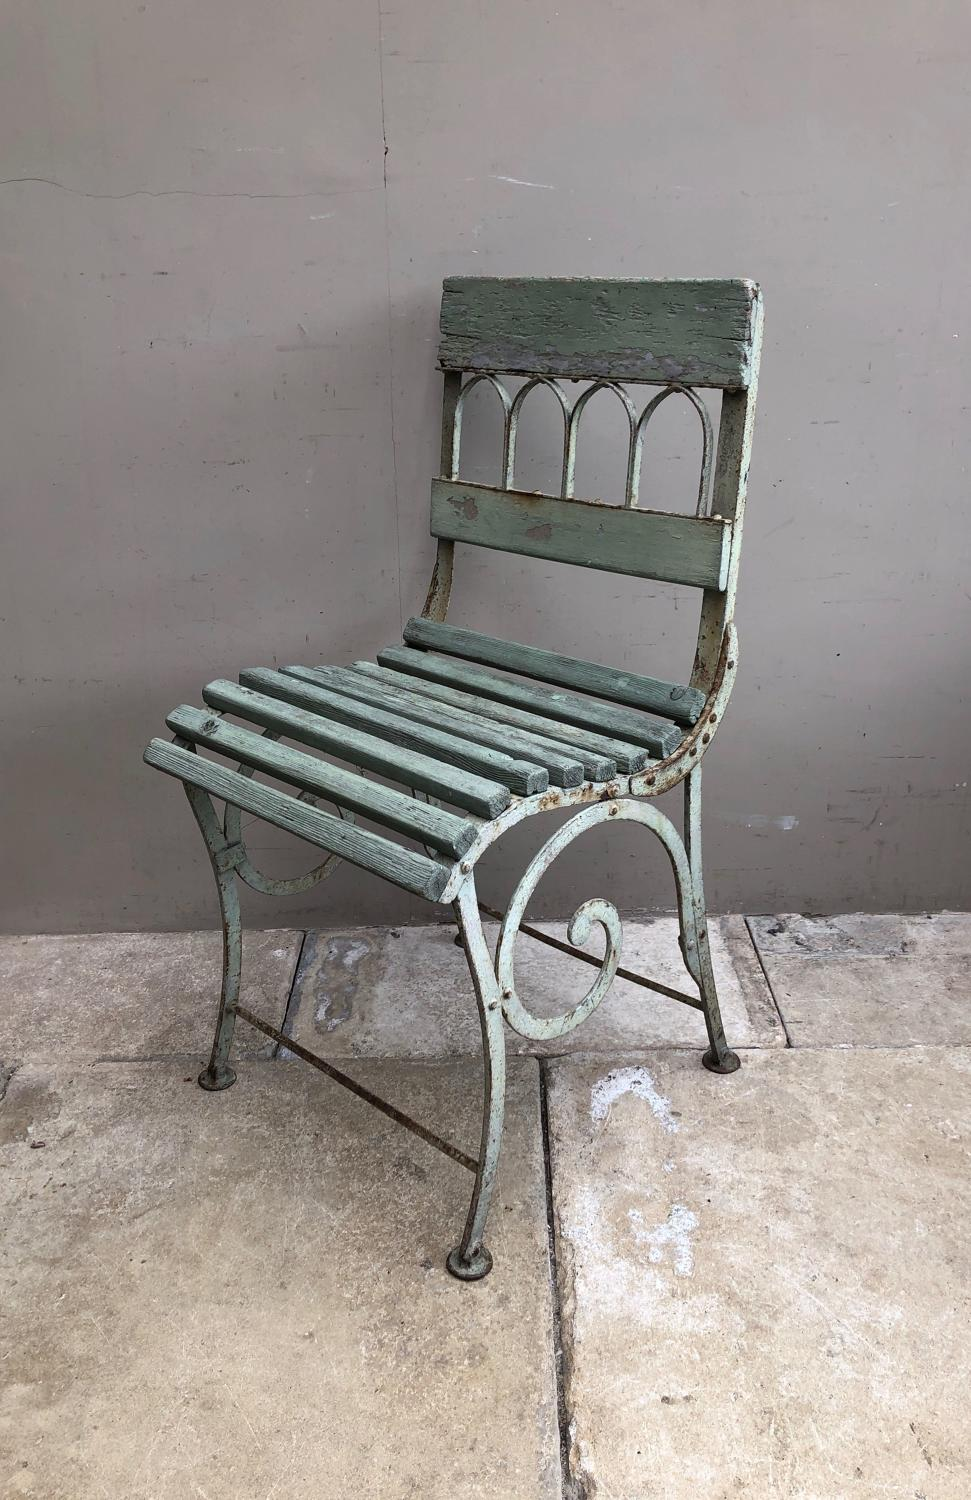 Victorian Cast Iron and Wooden Garden Chair - Original Paint.